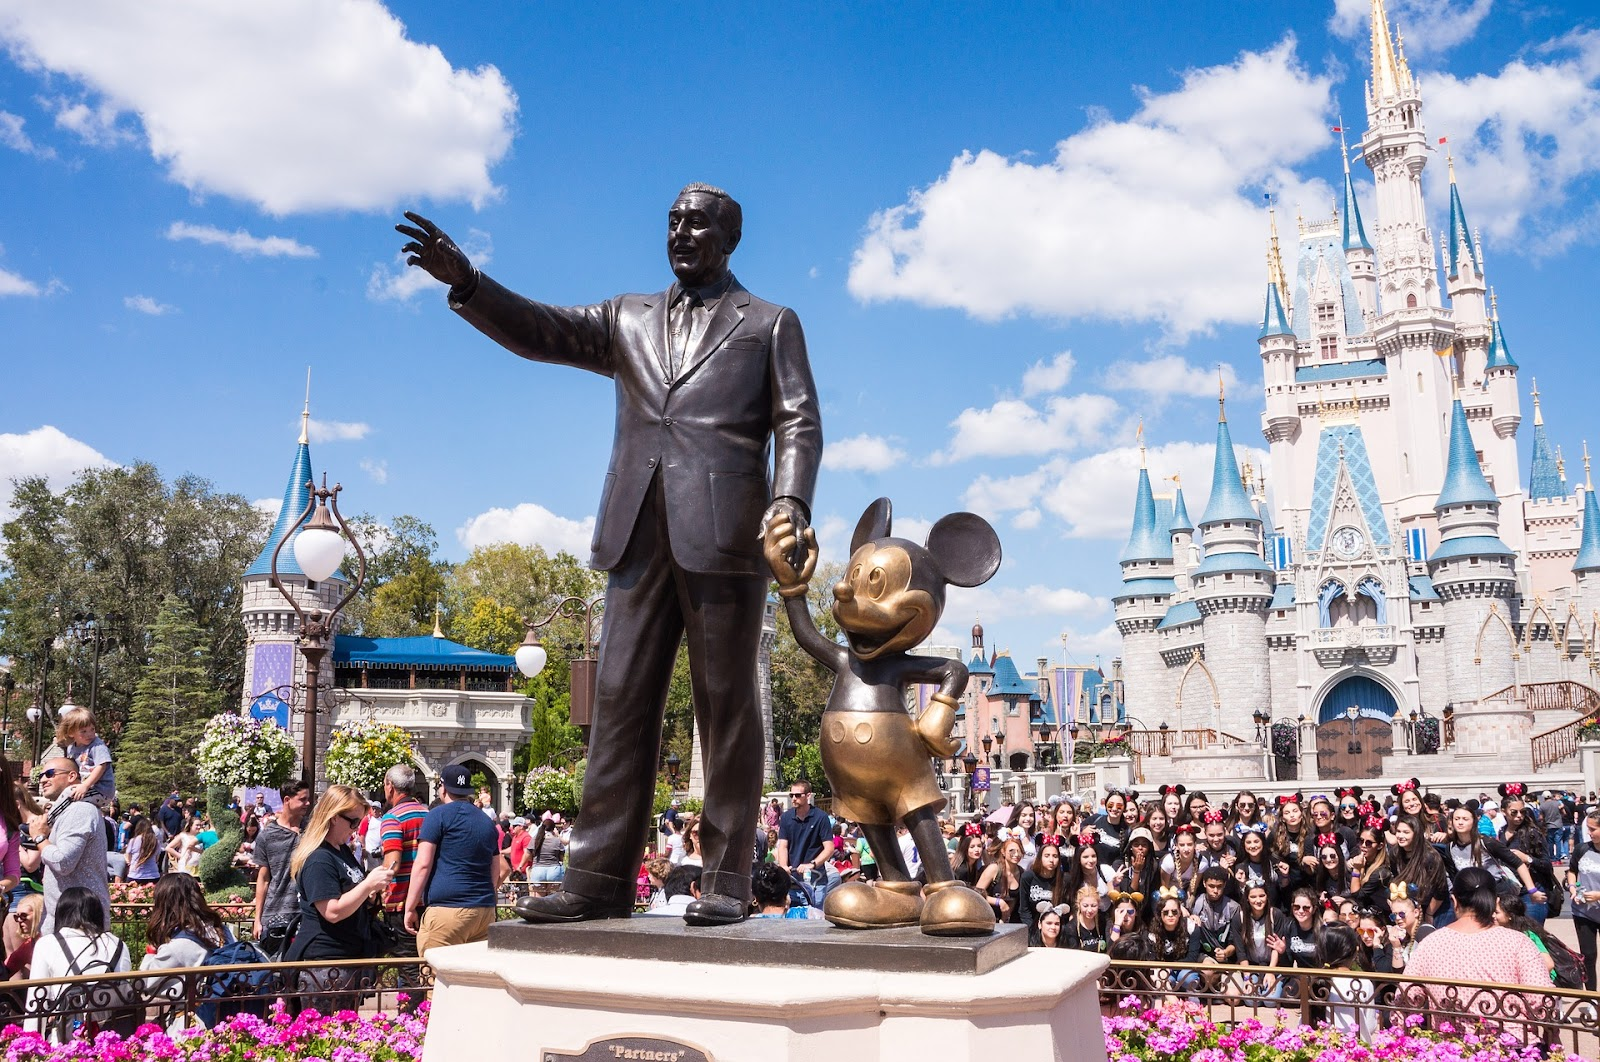 walt disney and mickey mouse partners black and gold statue in crowded walt disney world orlando theme park